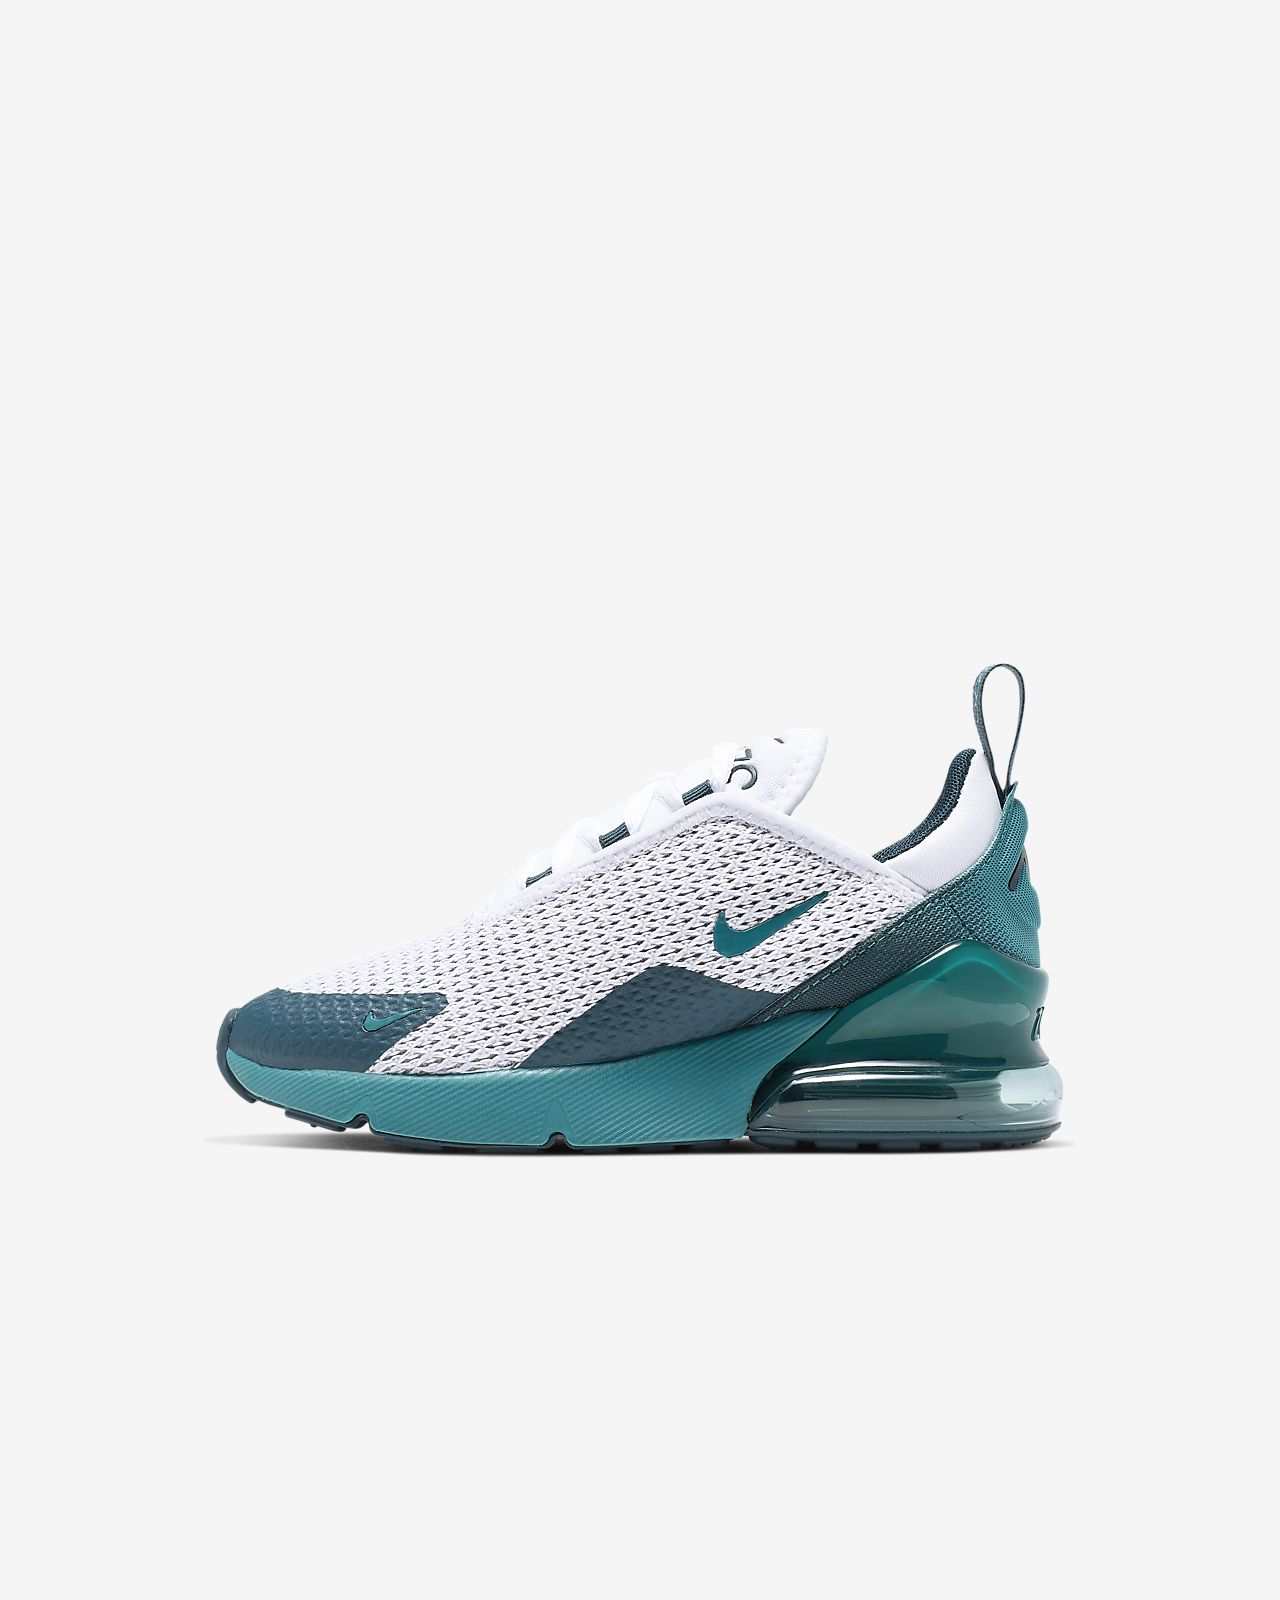 reputable site 1c036 9ad16 Nike Air Max 270 Little Kids' Shoe